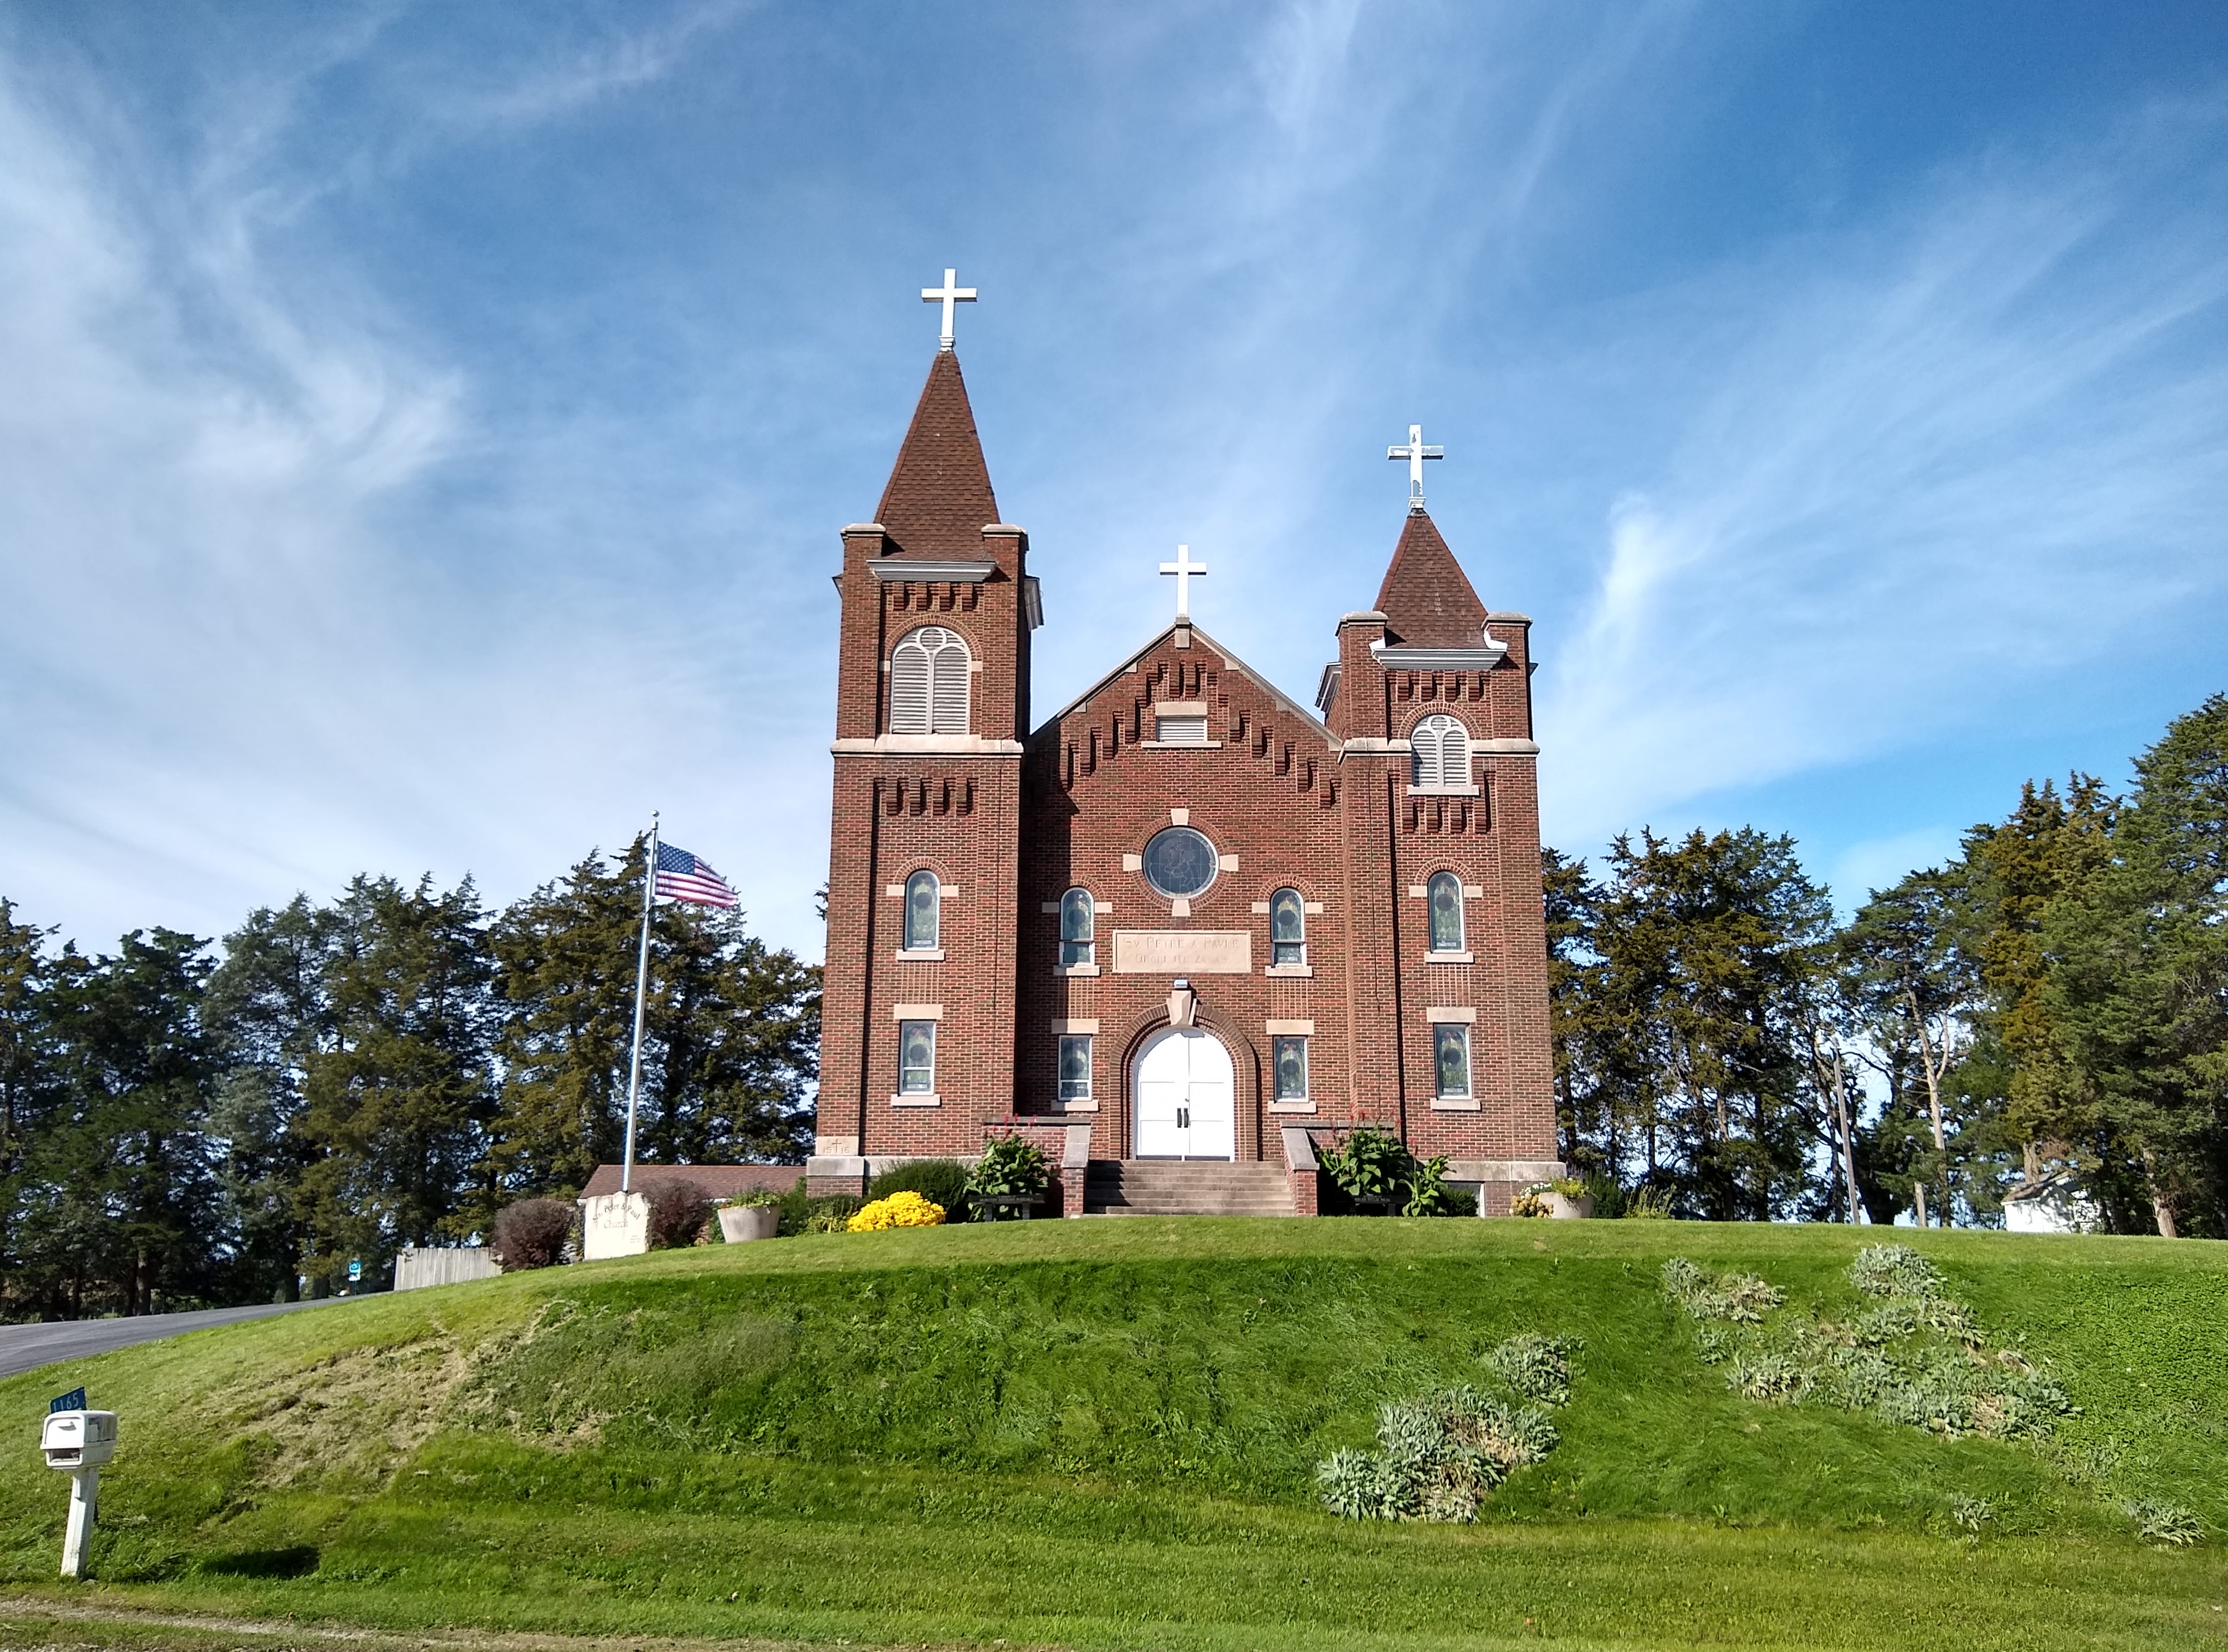 new picture of the church